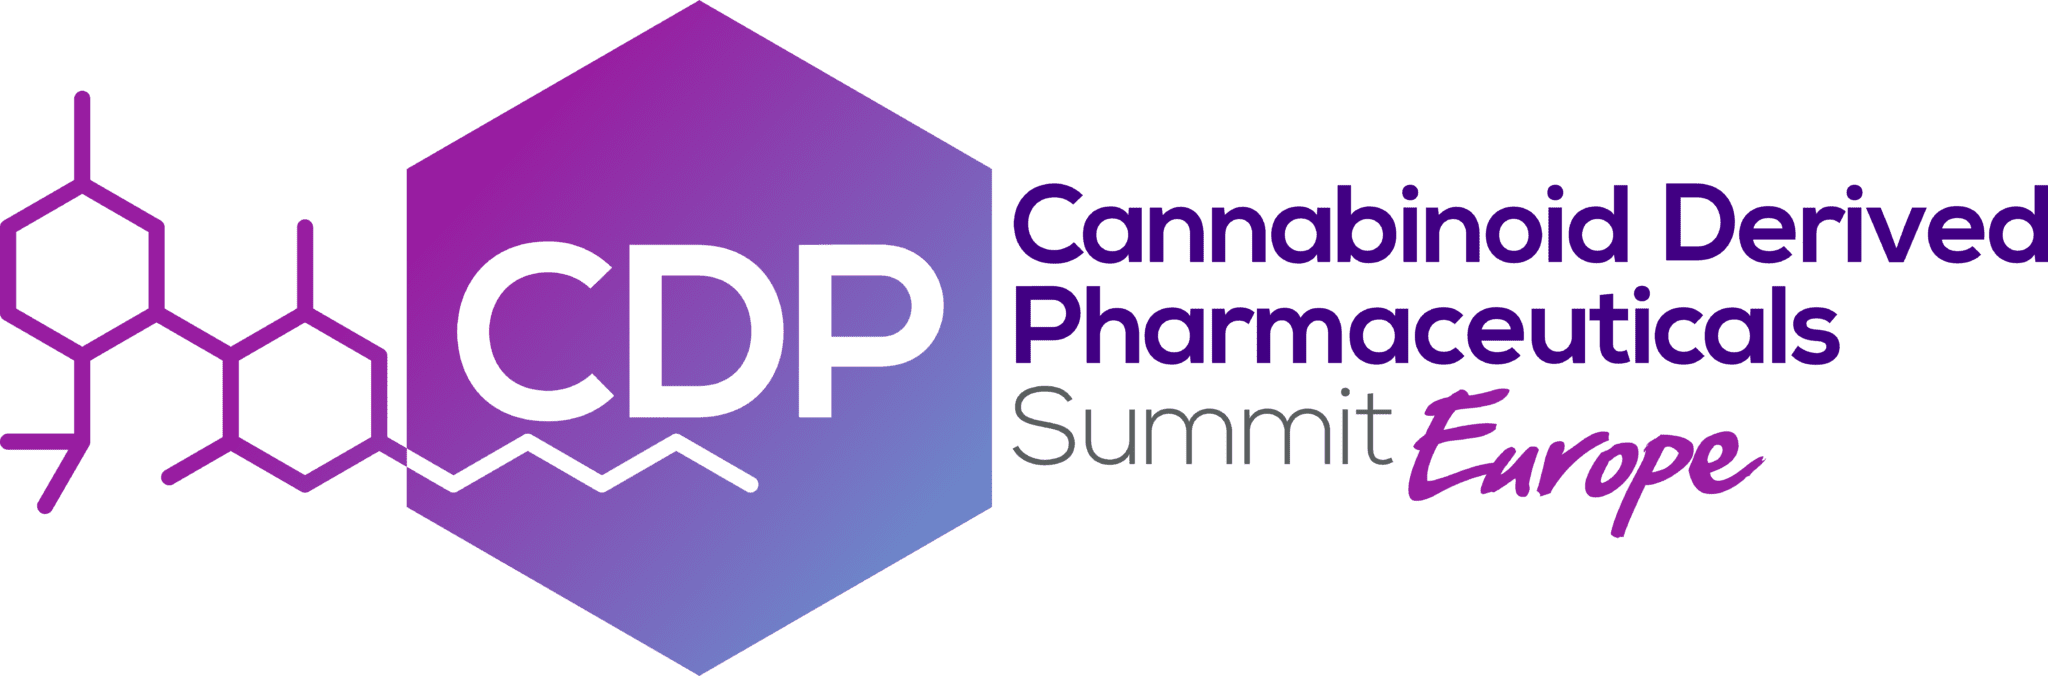 Cannabinoid Derived Pharmaceuticals Summit Europe 2020 logo